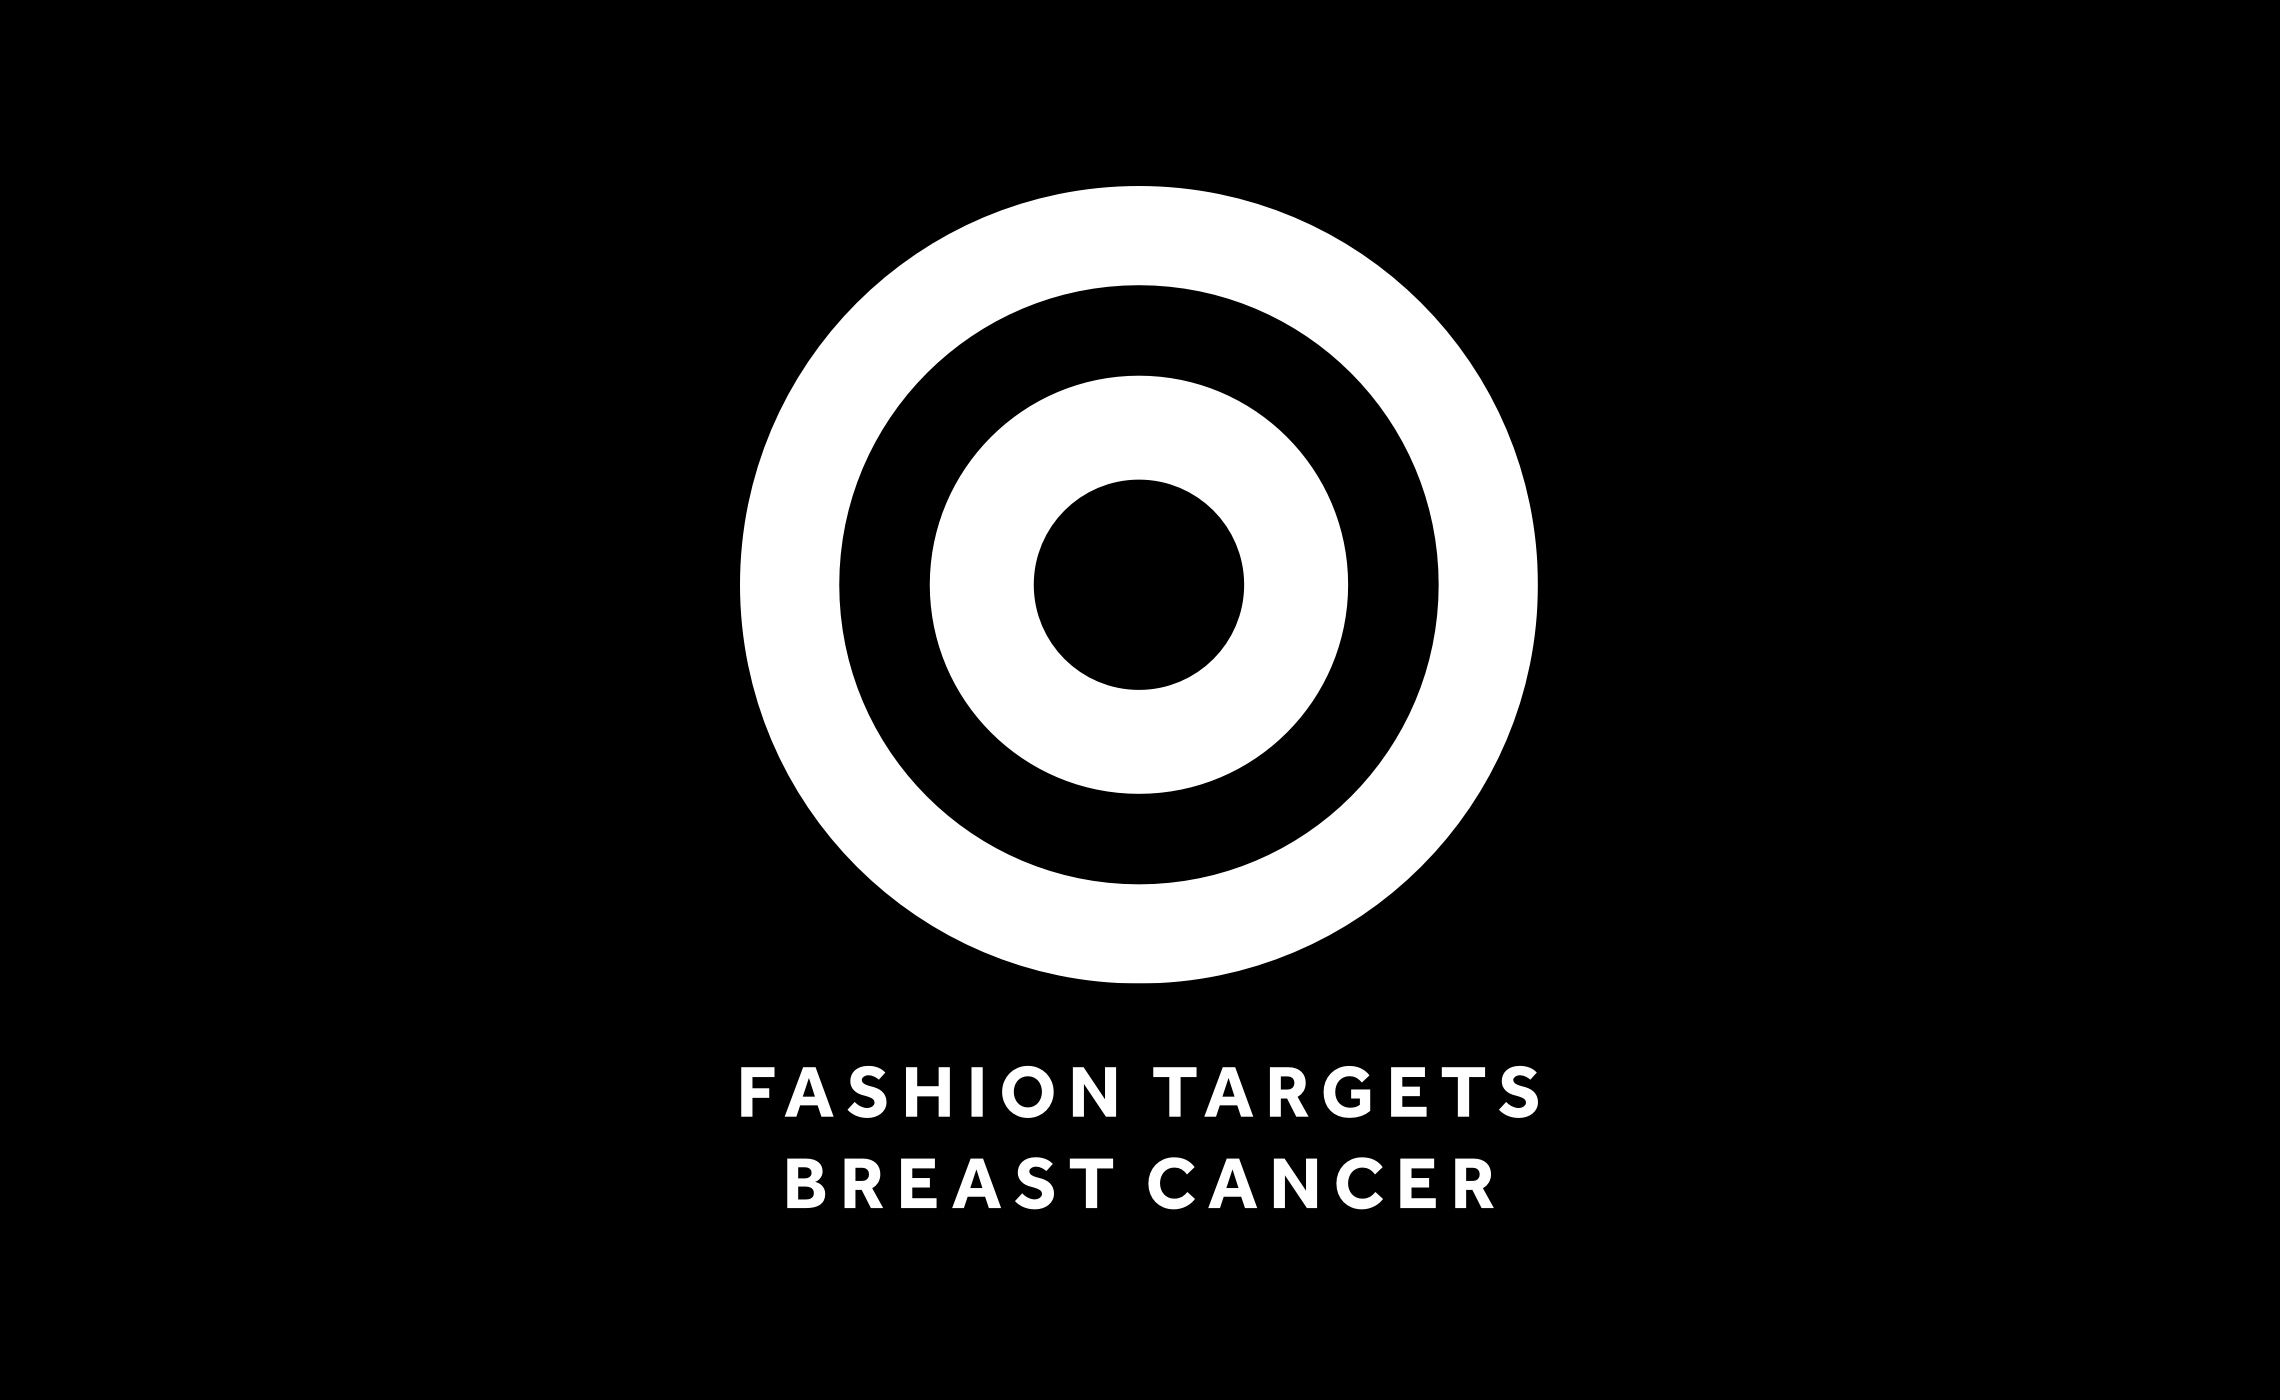 Fashion Targets Breast Cancer – branding